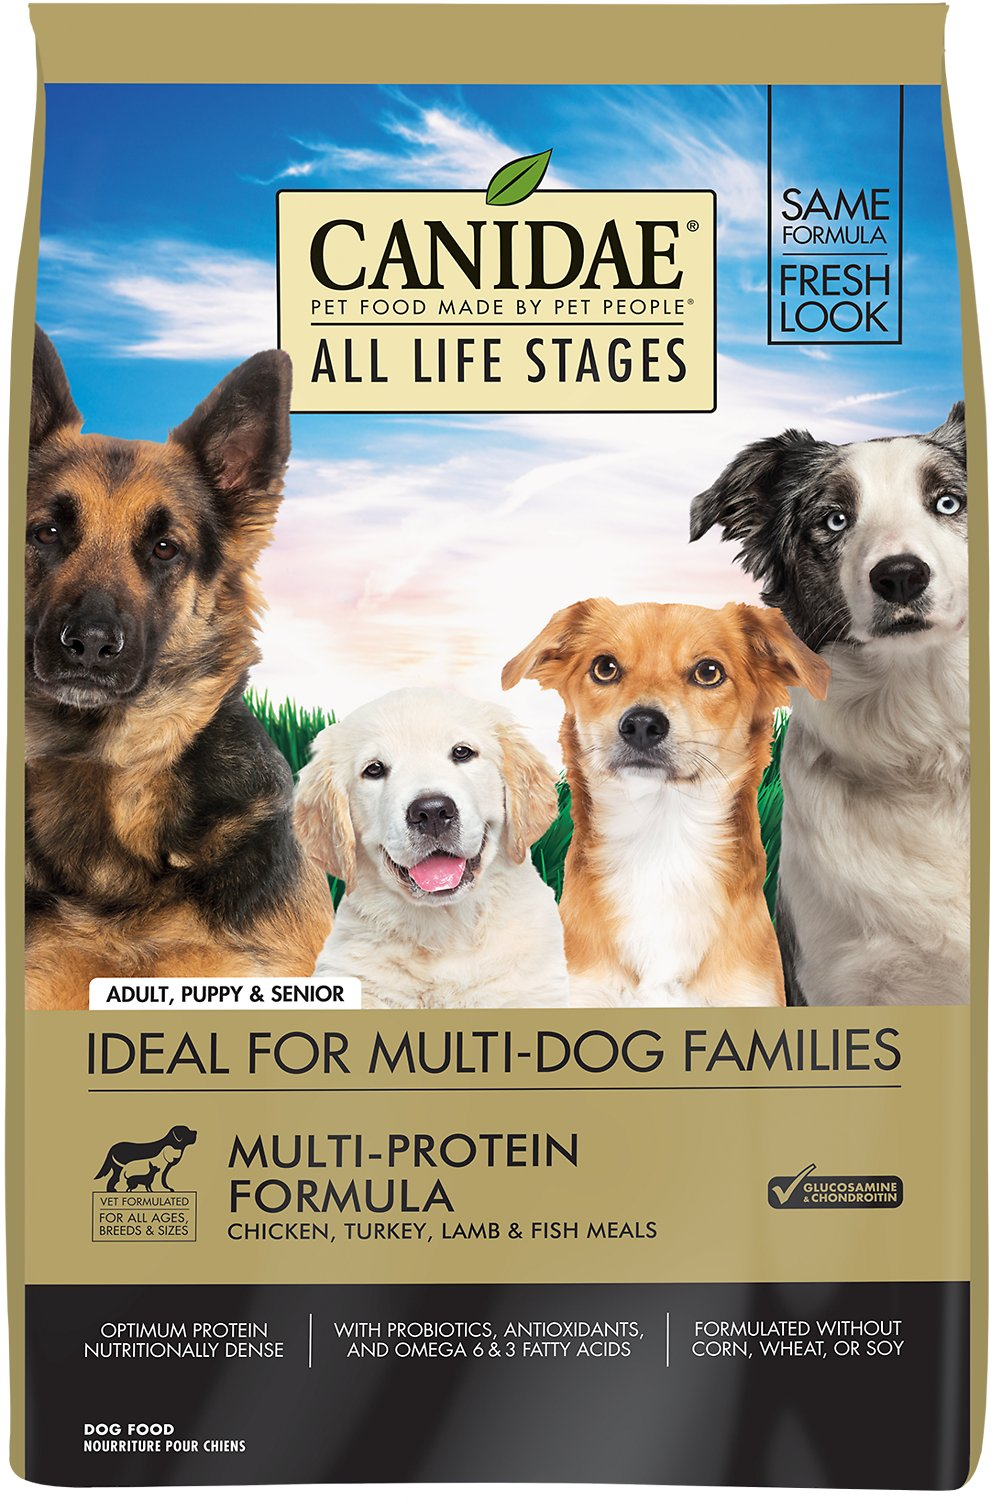 Canidae All Life Stages Multi-Protein Formula Dry Dog Food Image